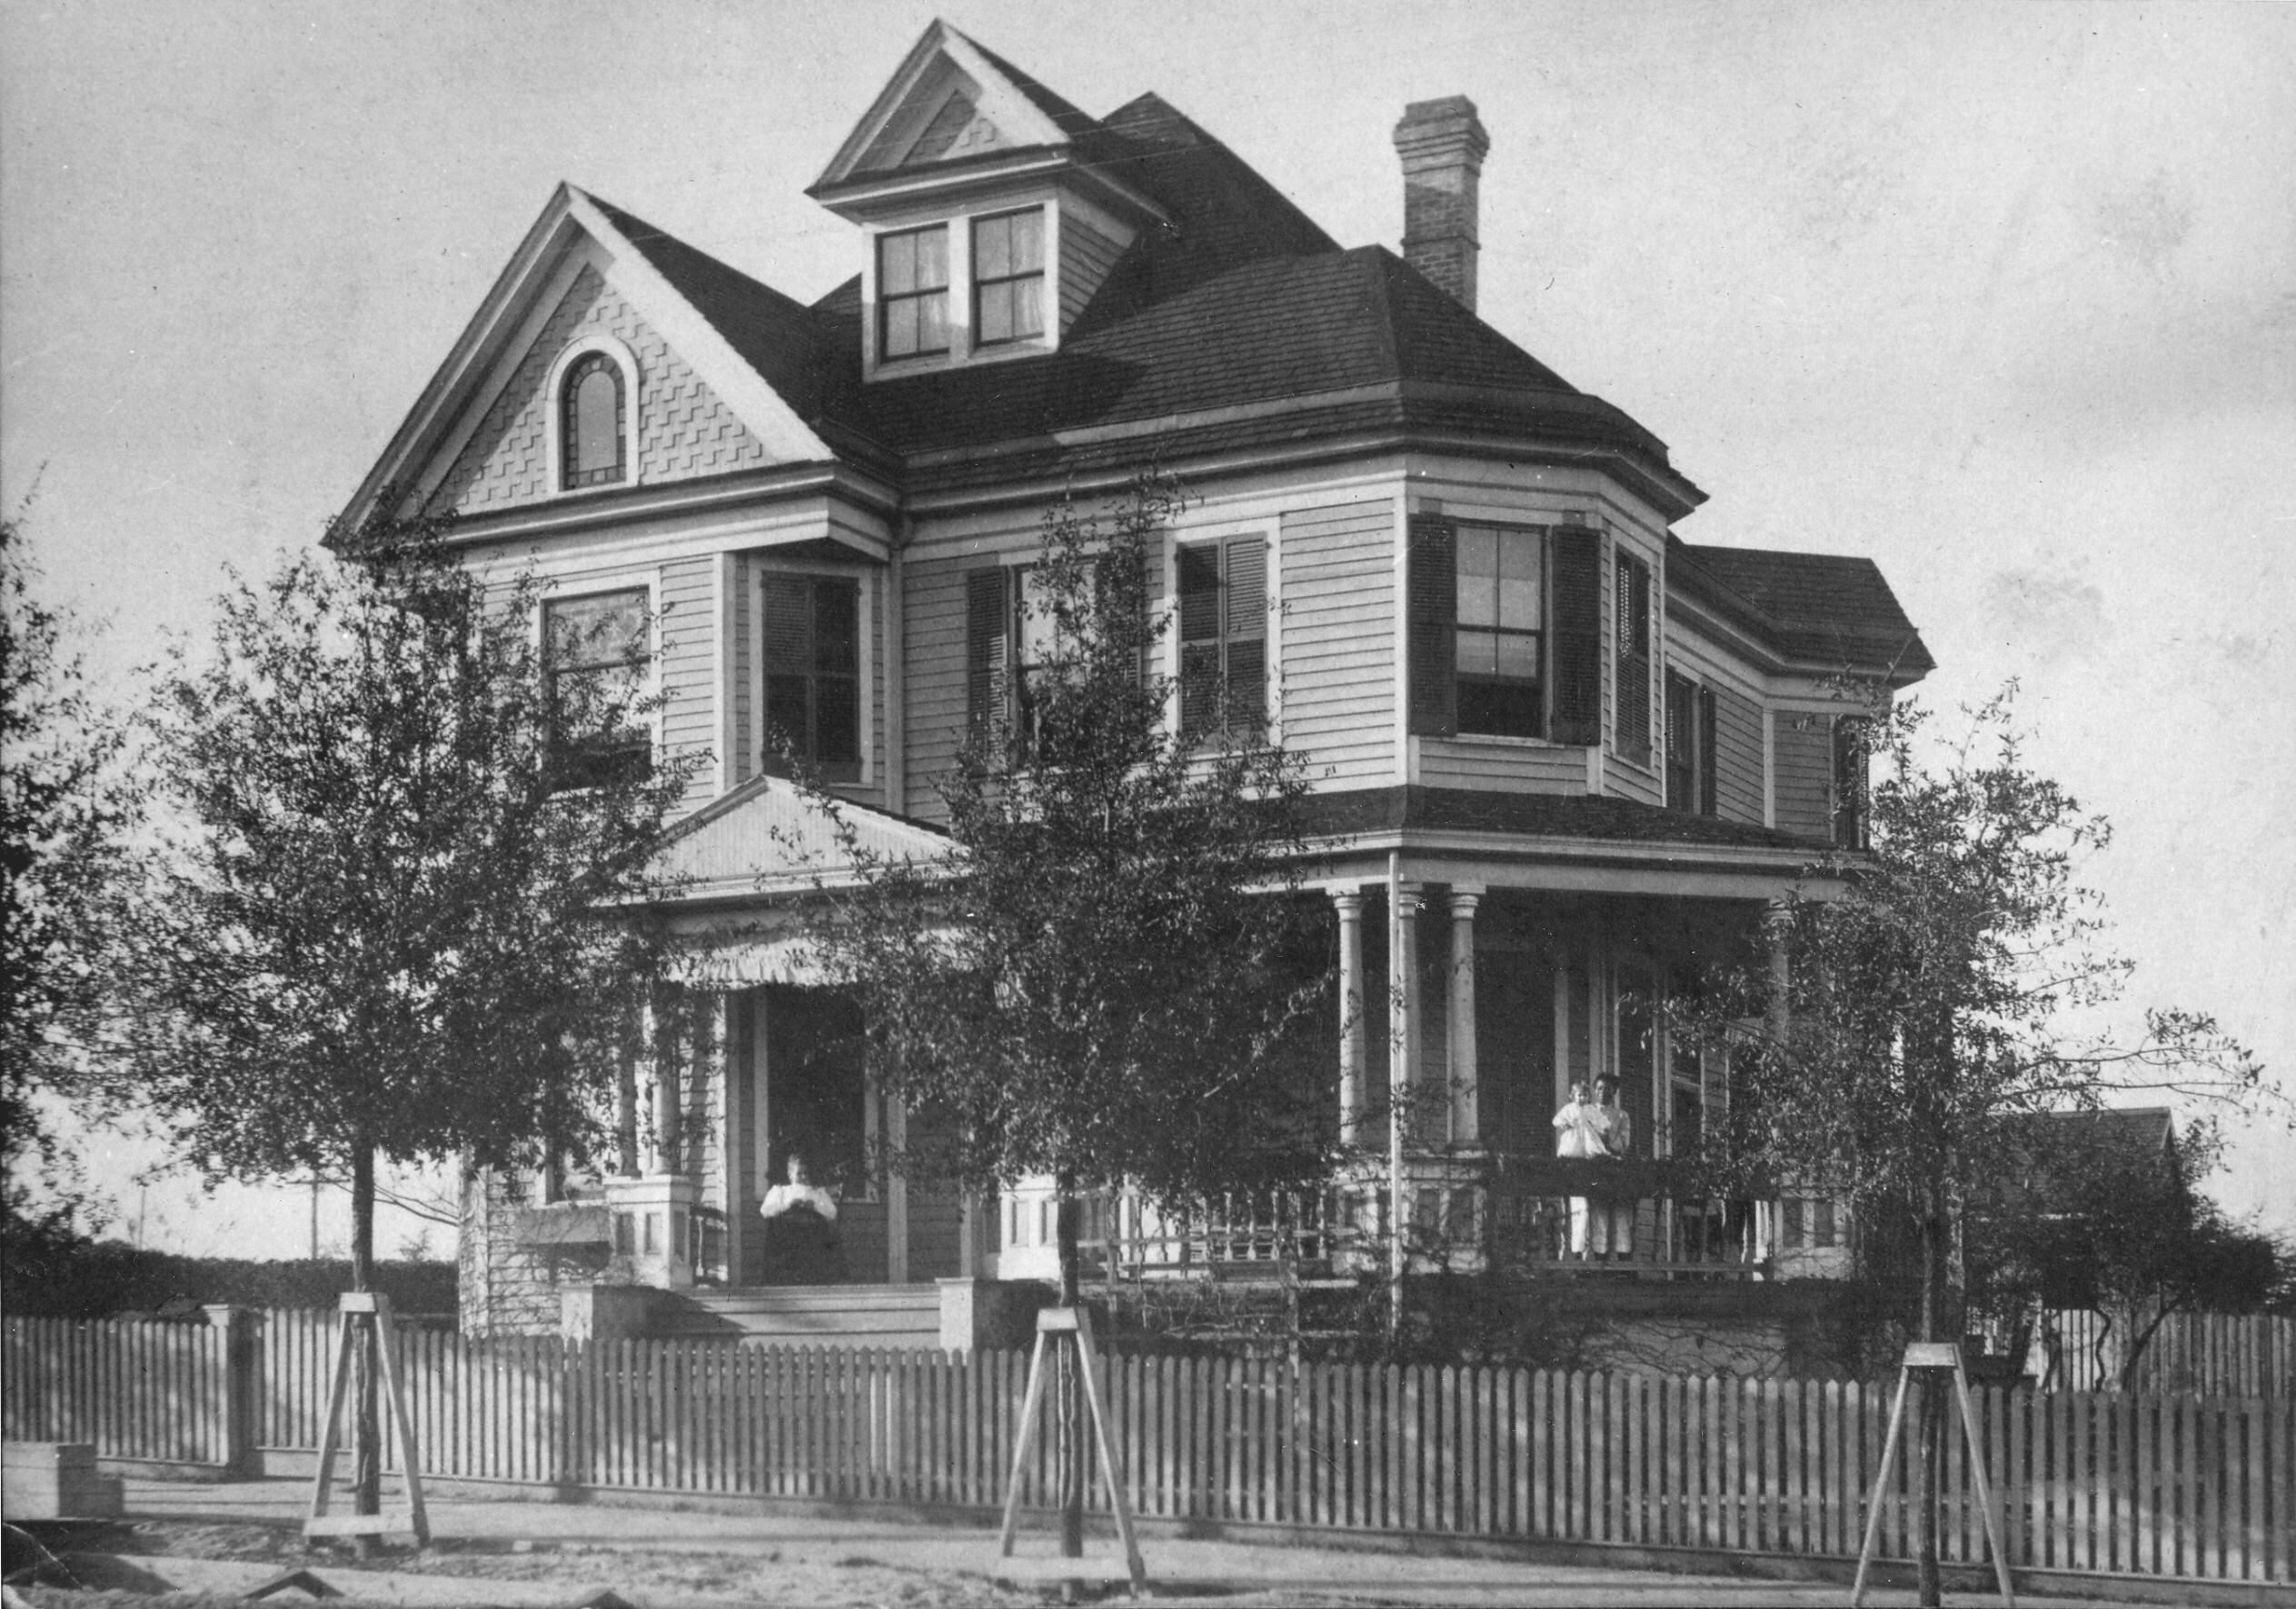 Historic Oscar L. Bass House - Built 1902